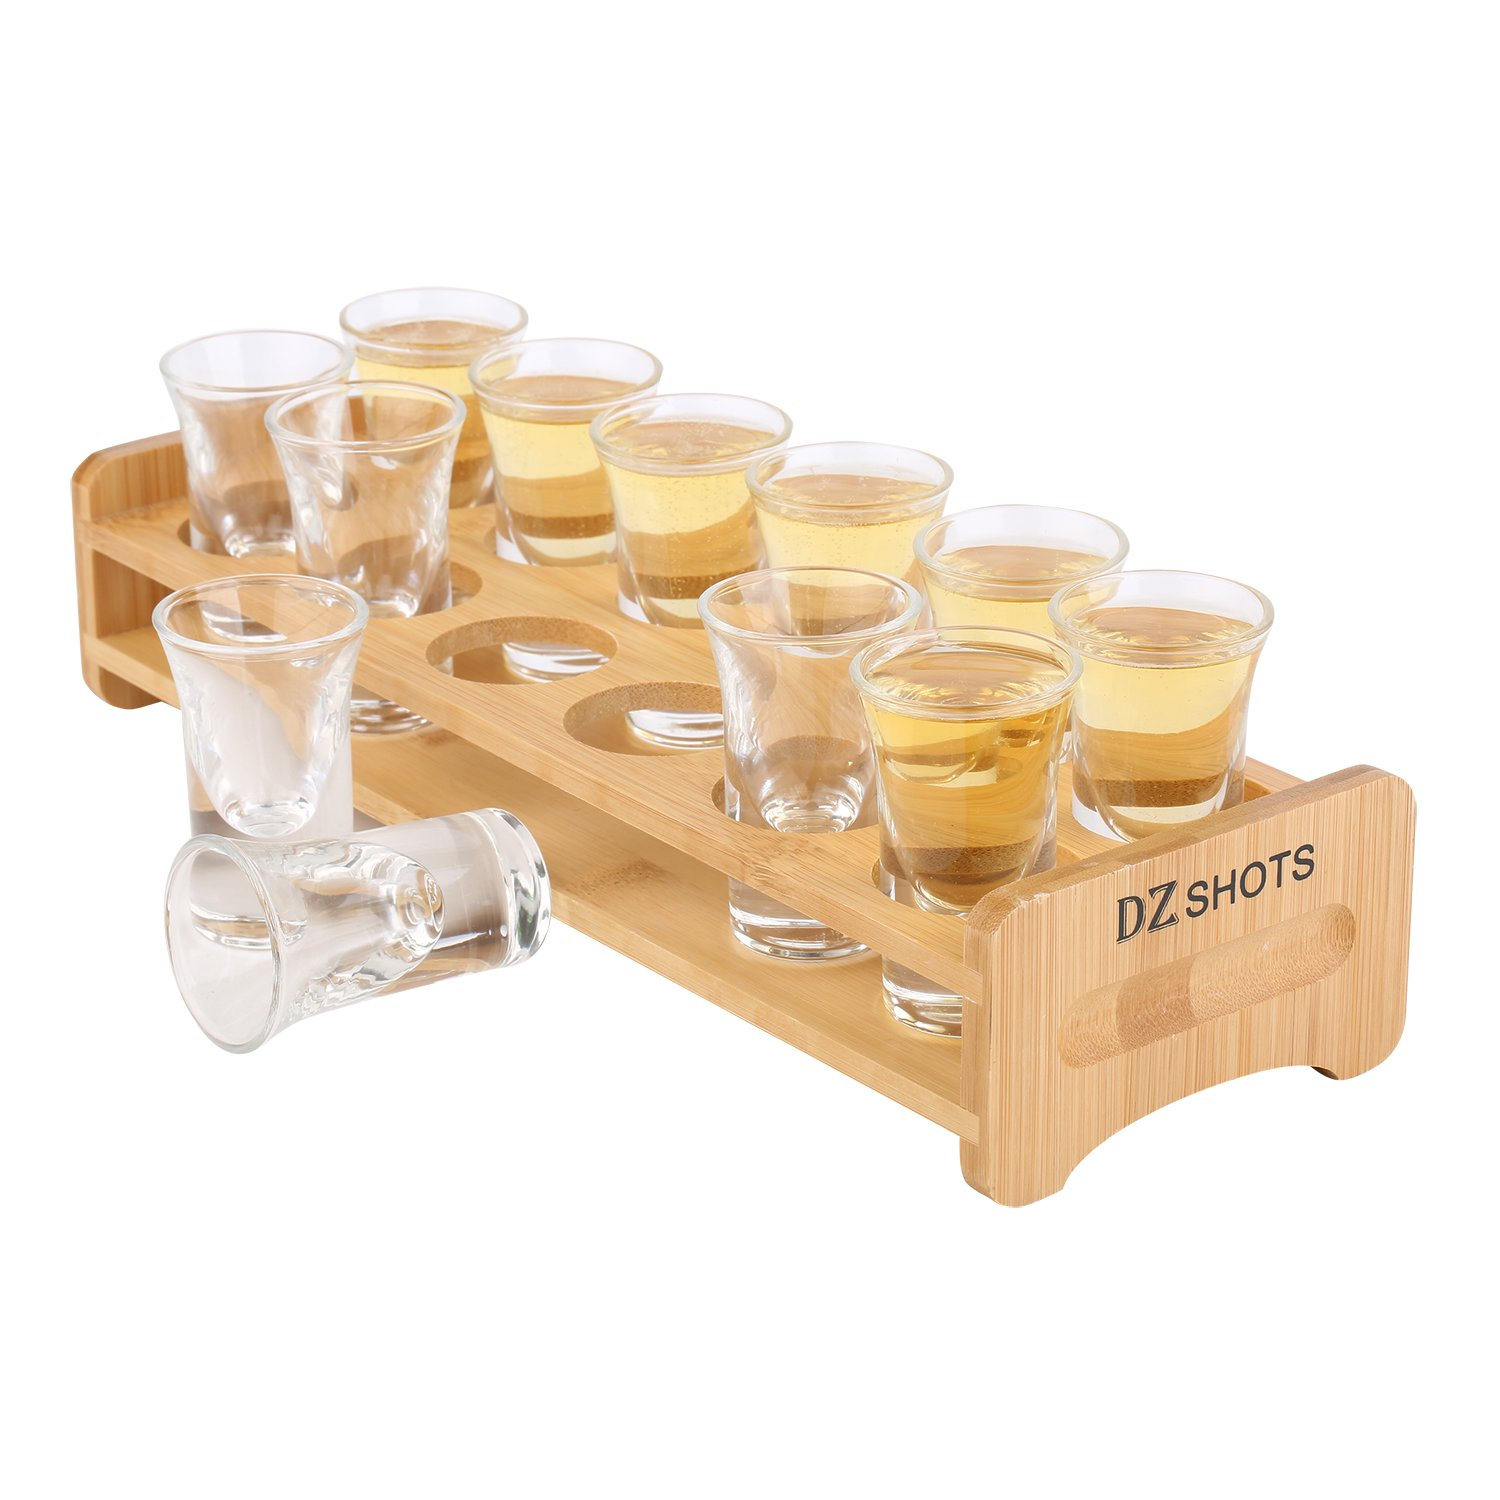 D&Z Shot Glass Set with Tray,include 12 Thick Base Crystal Clear Shot Glasses and Bamboo Holder for Barware, Shot Glass Display, Whisky Brandy Vodka Rum and Tequila Shot Set,0.75oz